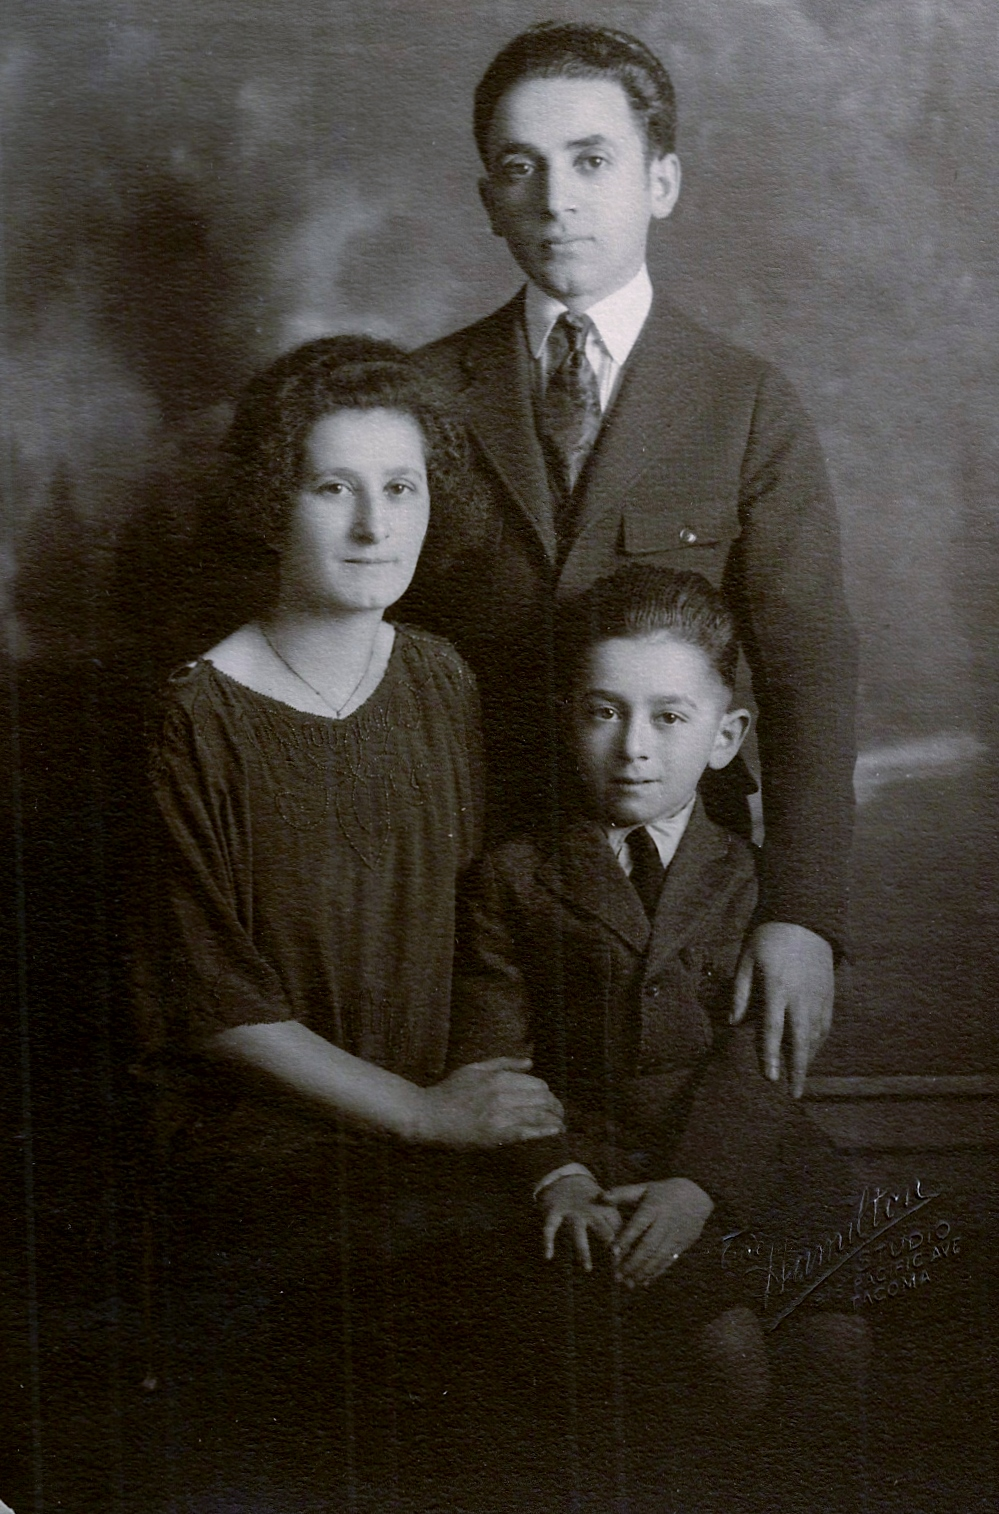 Harry and Yetta Frishman with their son, Daniel, are shown circa 1920, shortly after moving from Paterson, N.J., to Tacoma, Wash. (Courtesy Hillel Kuttler)